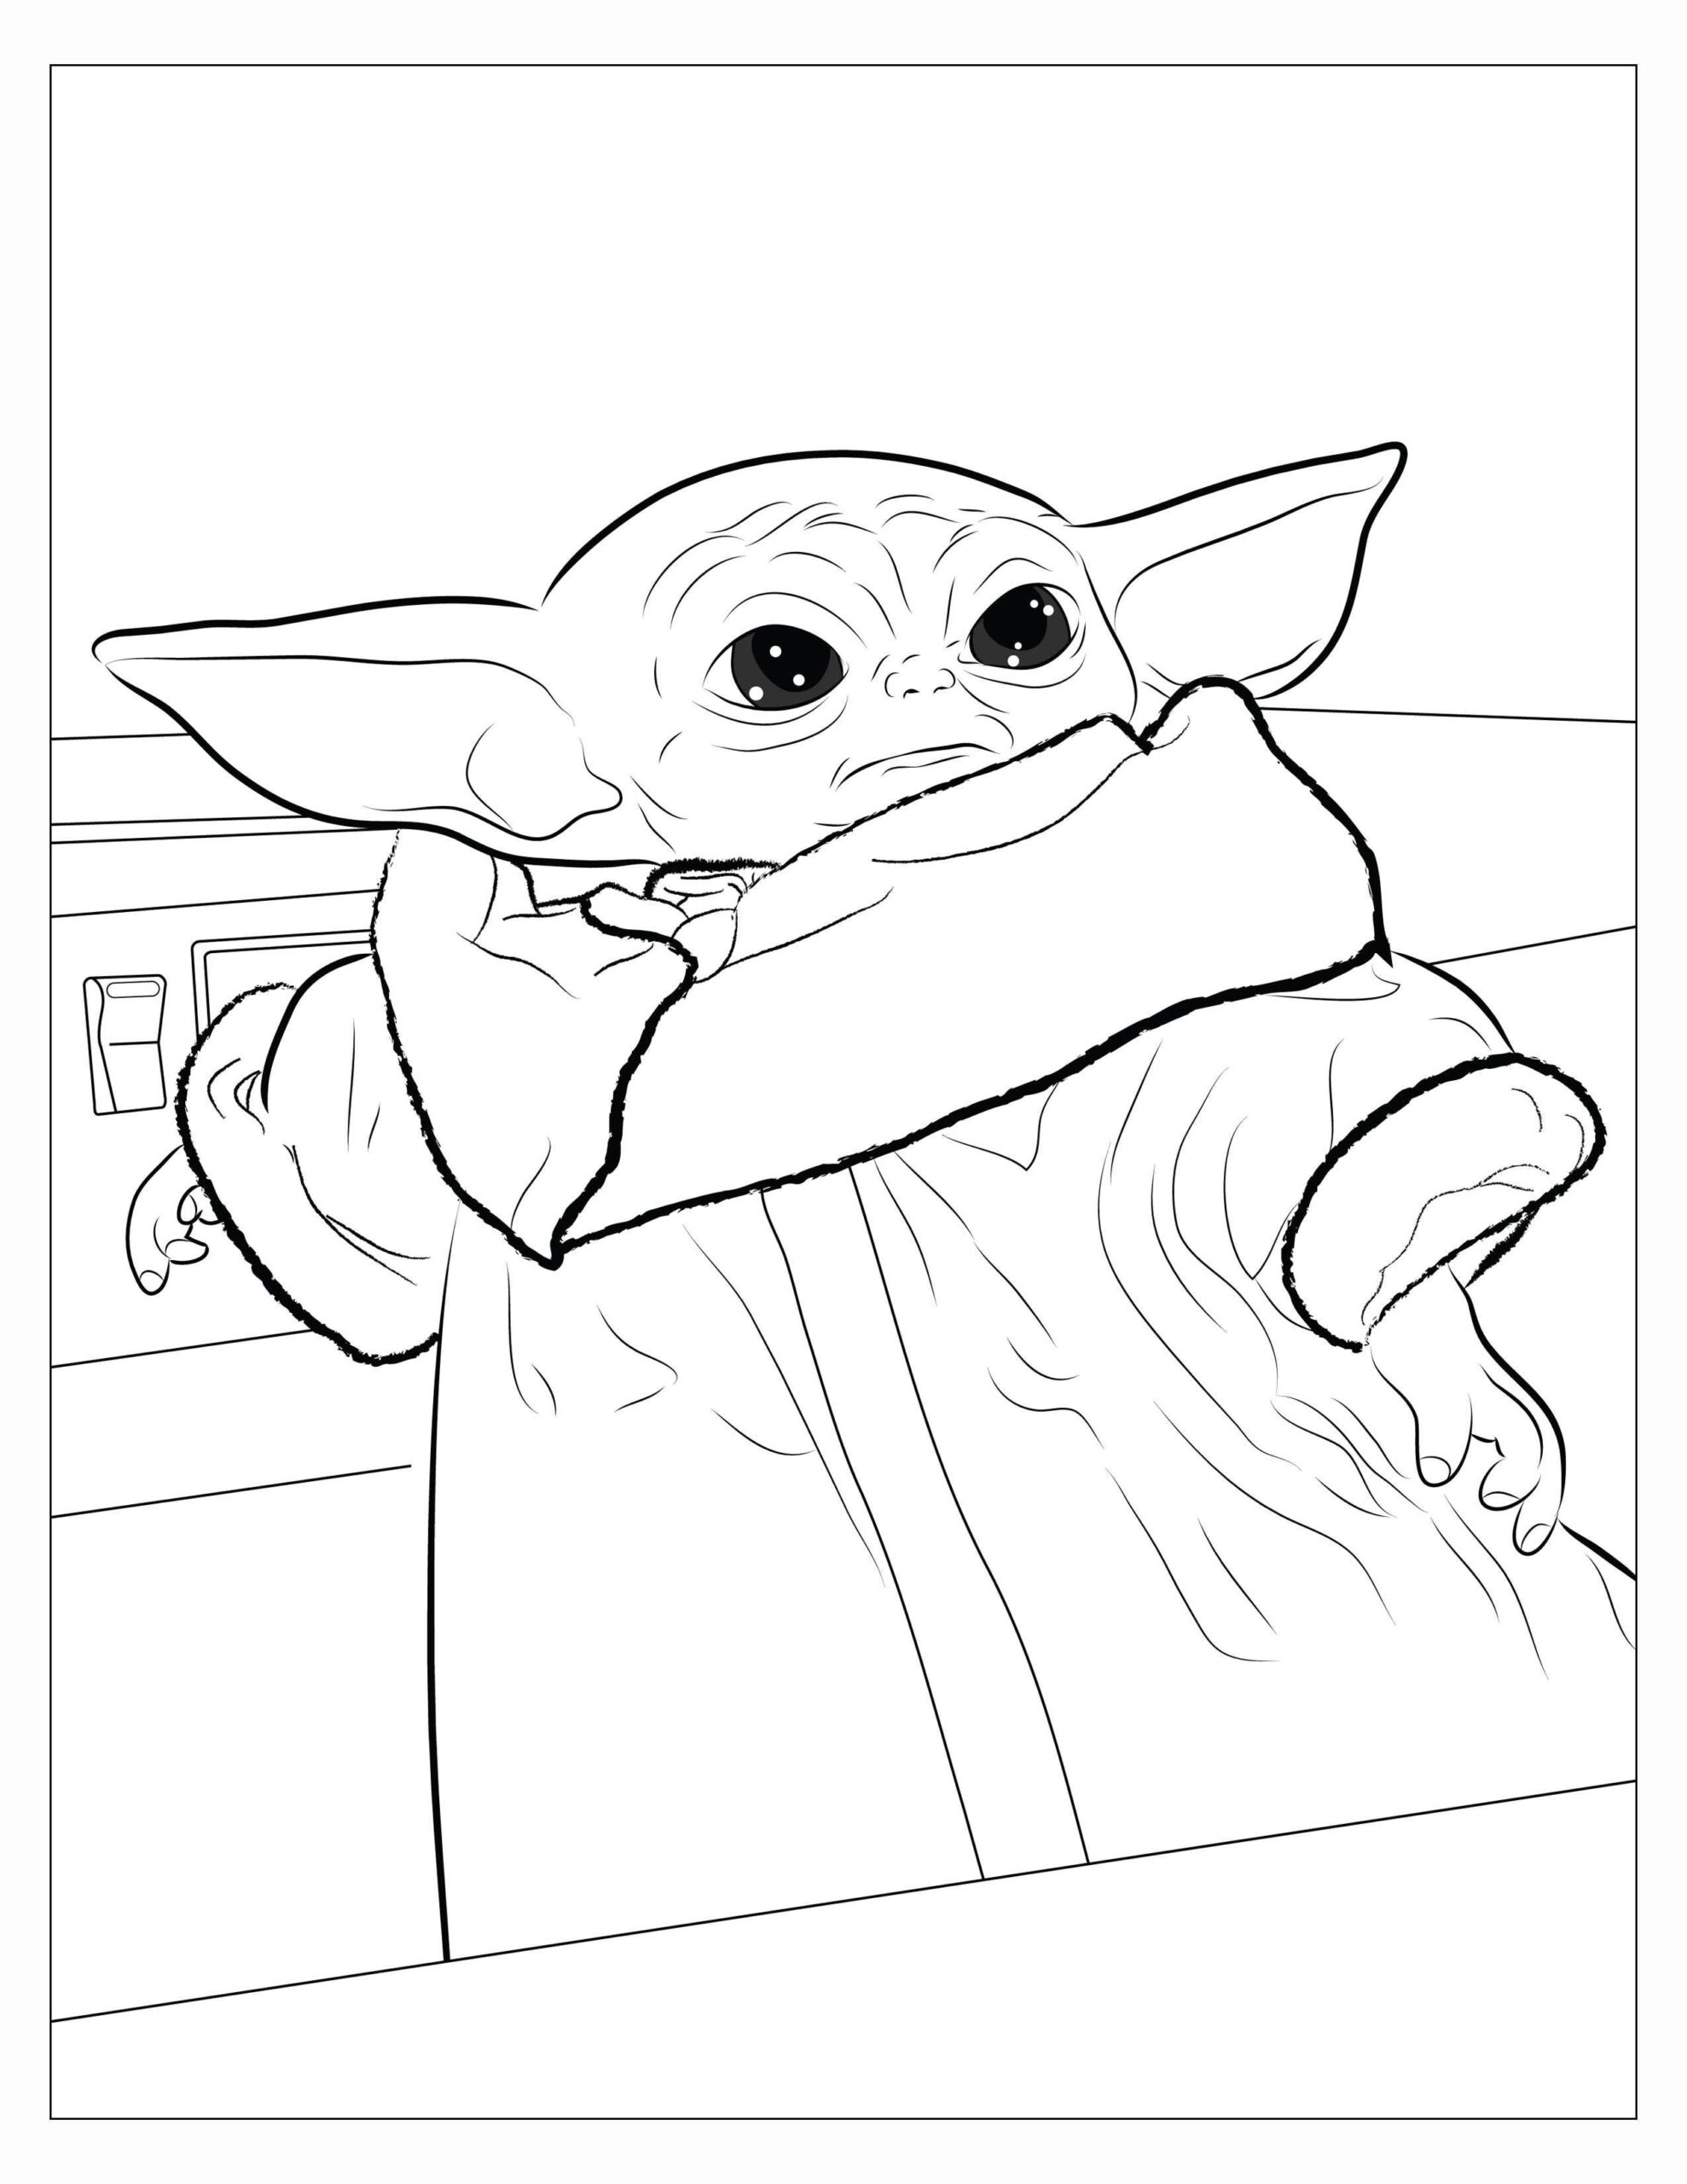 made coloring book for my niece and here are you can print babyyoda baby yoda grogu in coloring pages Baby Yoda Coloring Page